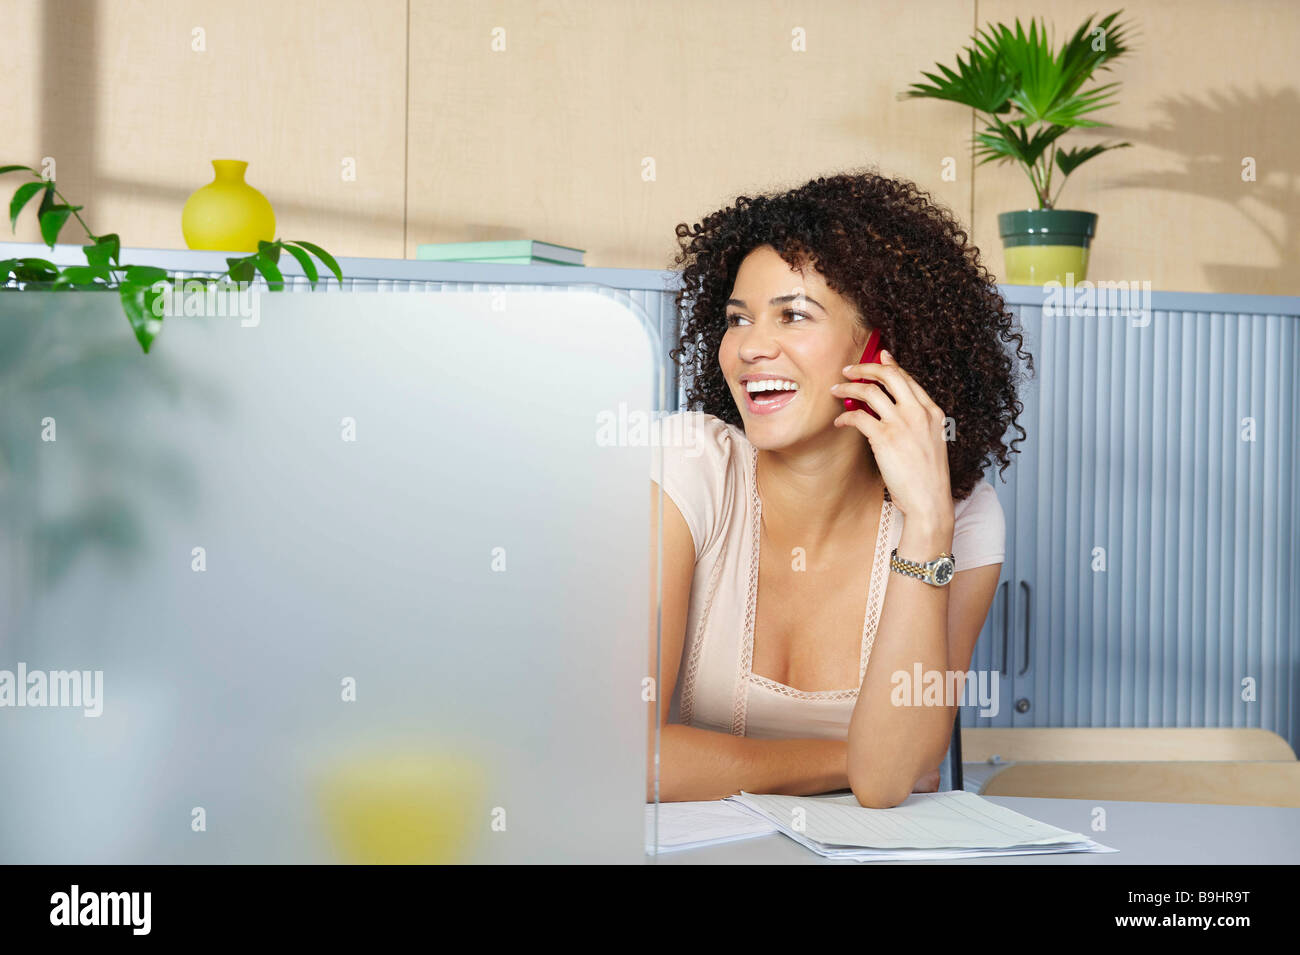 Young woman on phone at desk in office - Stock Image